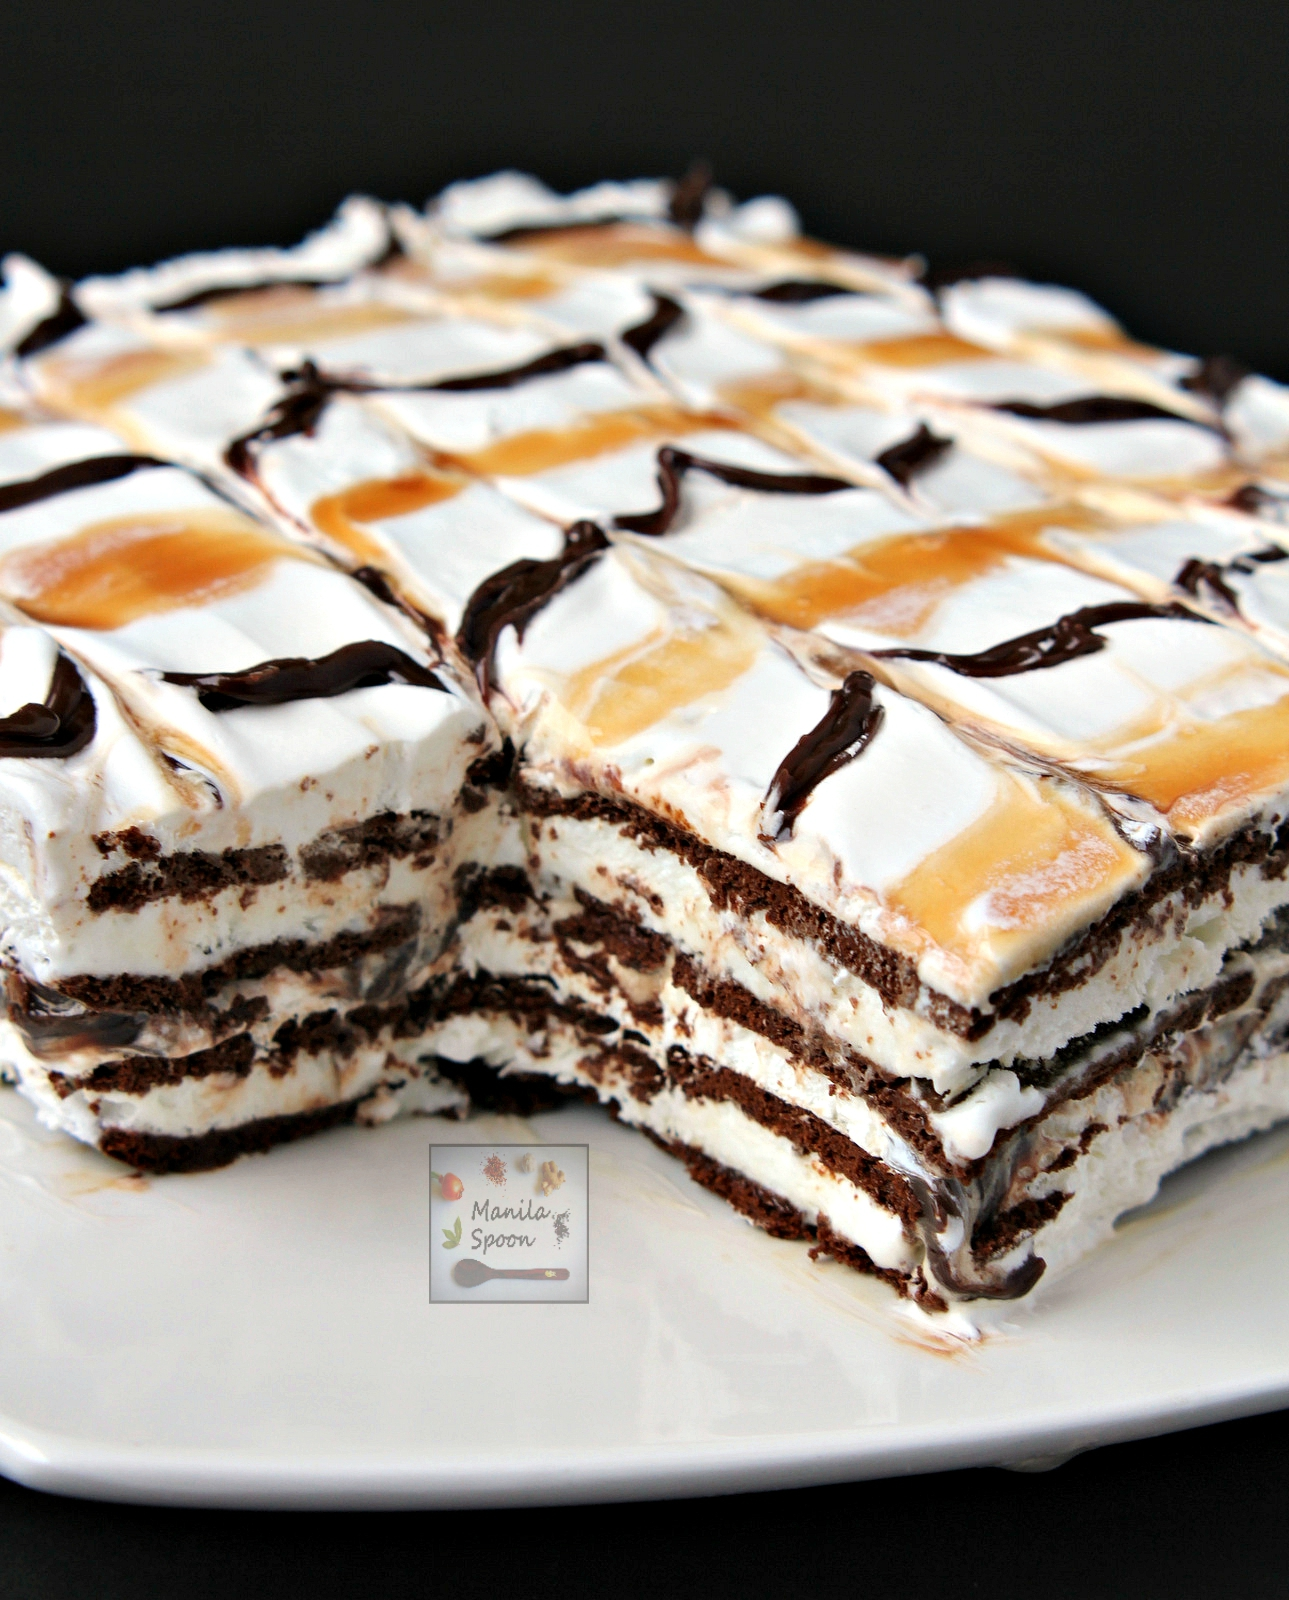 Layers of your favorite ice cream sandwich, whipped cream, chocolate fudge and caramel sauces and sprinkled with nuts (and some more sauce on top!) - this Lazy Ice Cream Sandwich Cake is summer's yummiest treat! Did I mention it is crazy EASY to make?